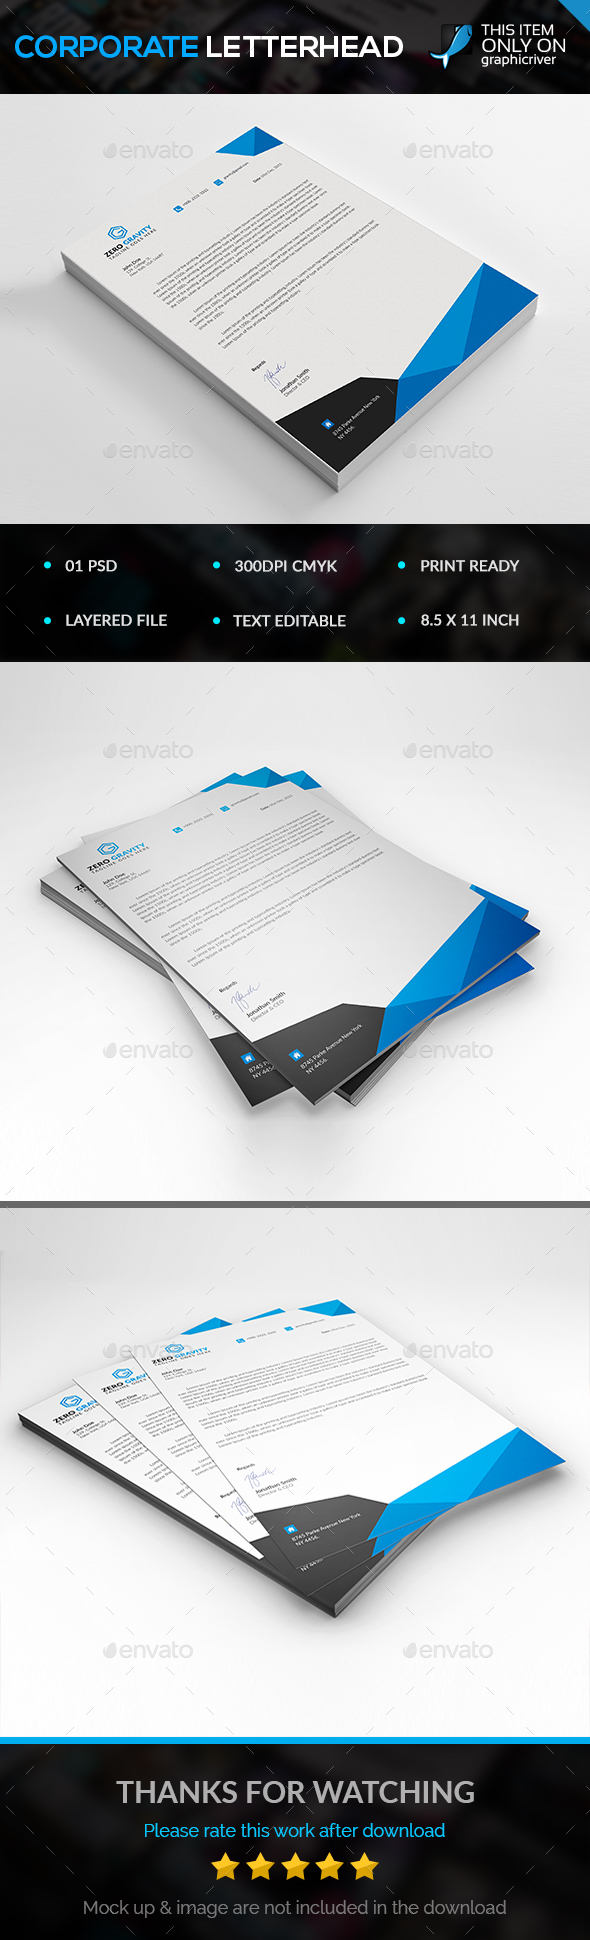 Corporate letterhead letterhead template template and corporate letterhead spiritdancerdesigns Choice Image